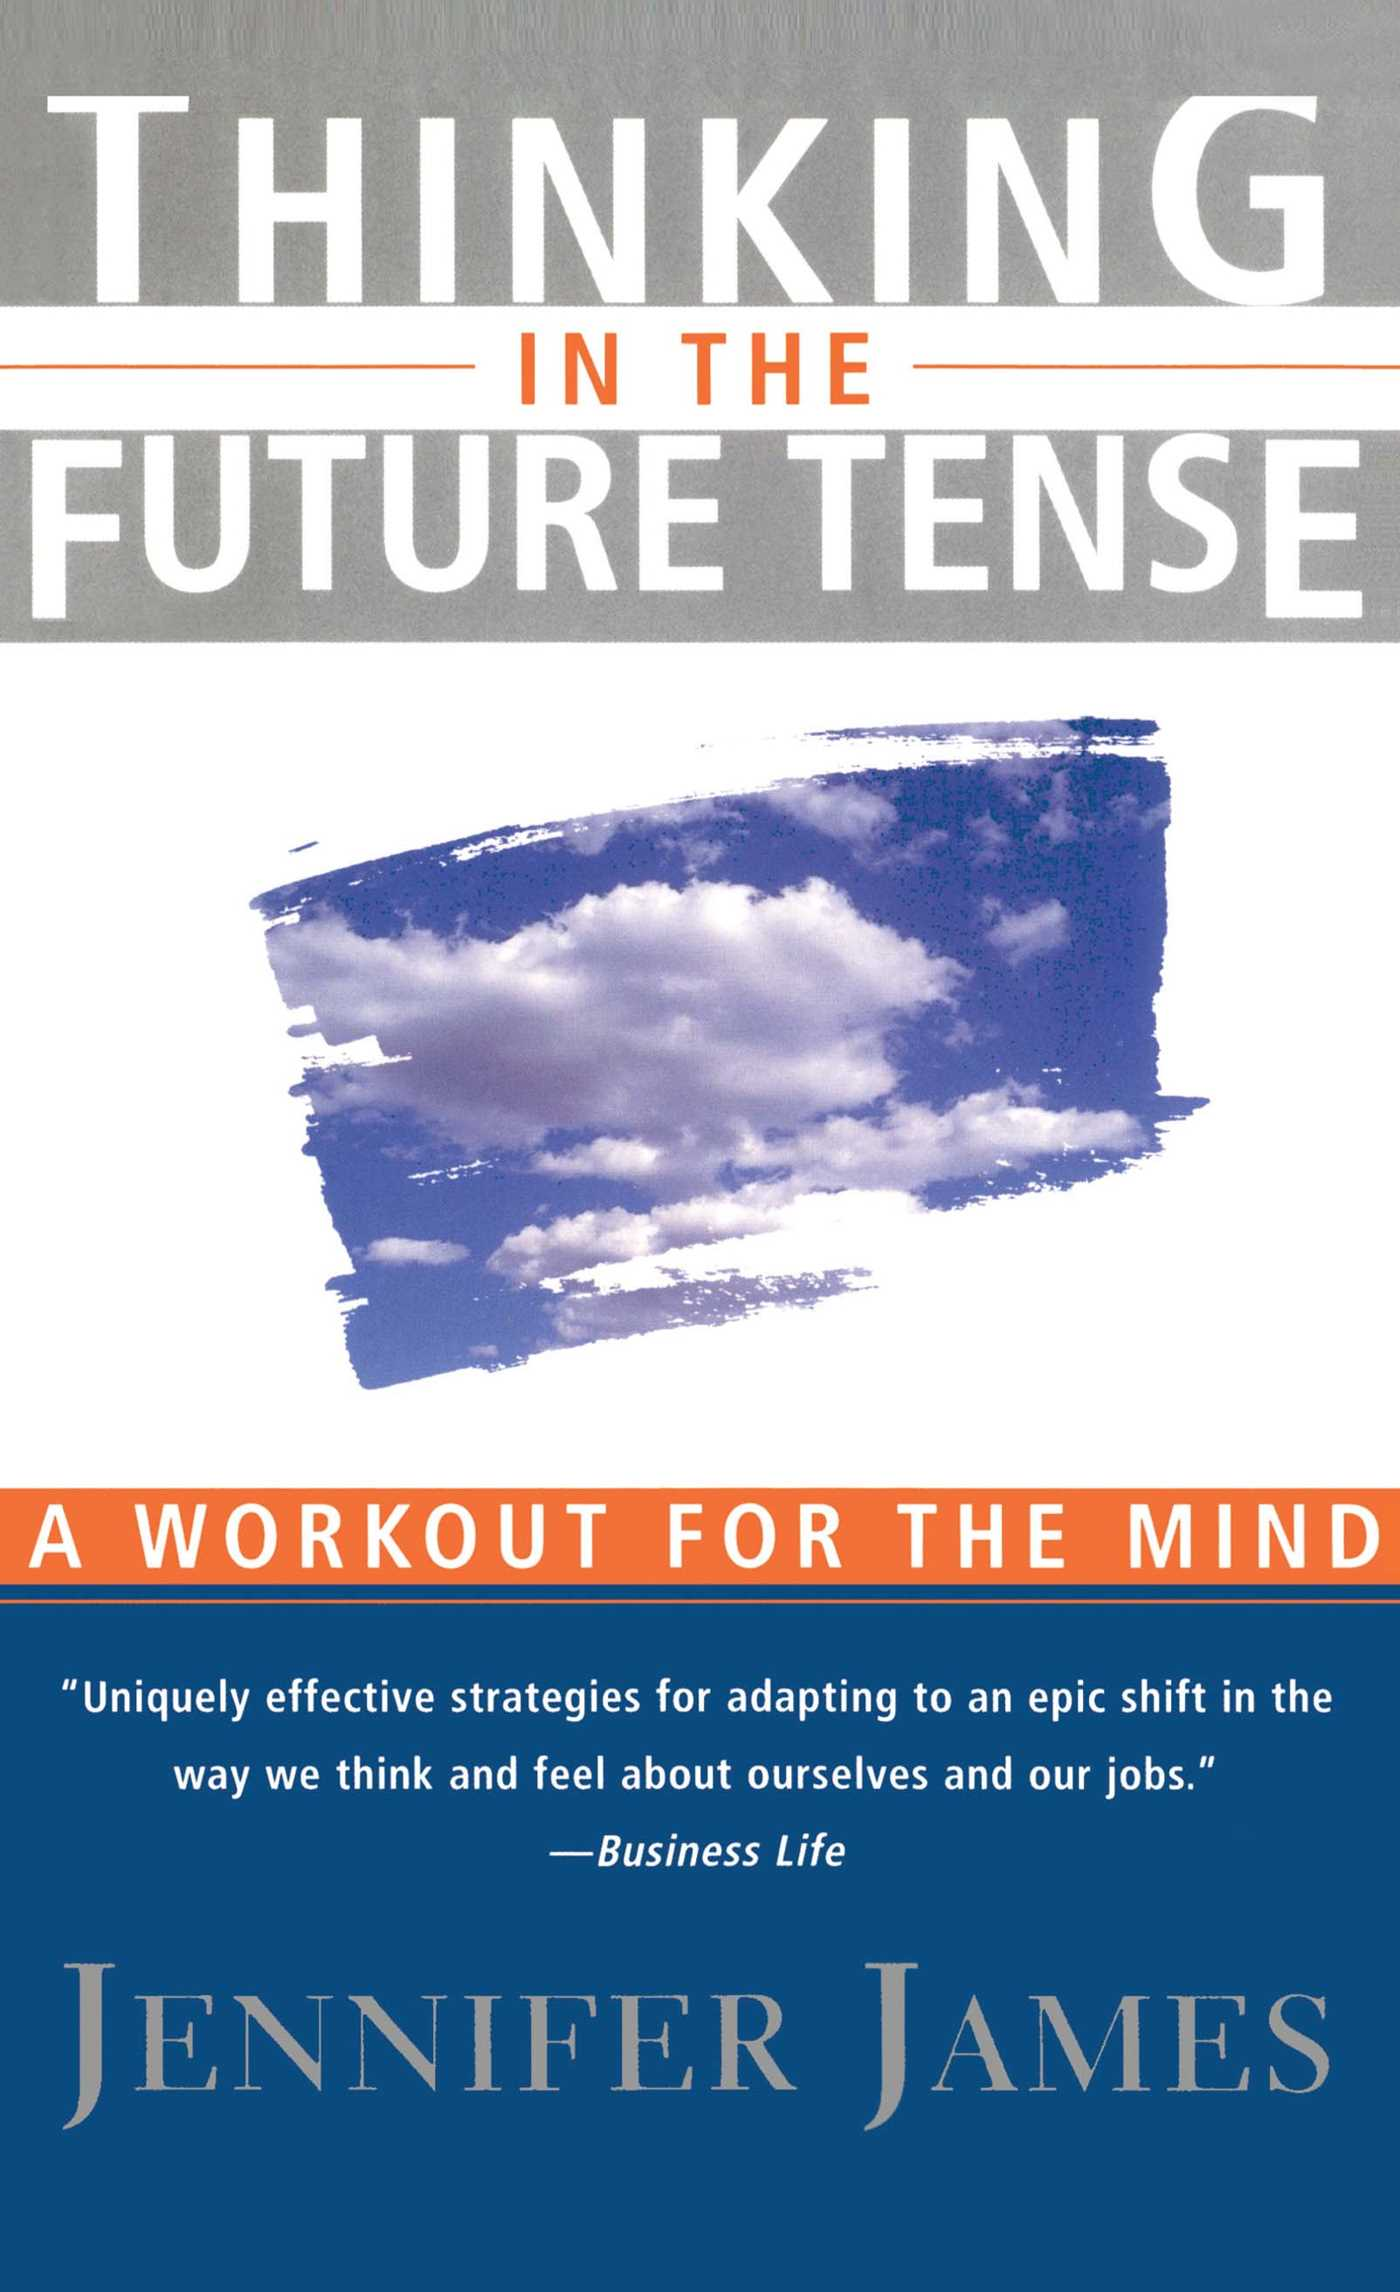 Thinking in the future tense 9781439135440 hr